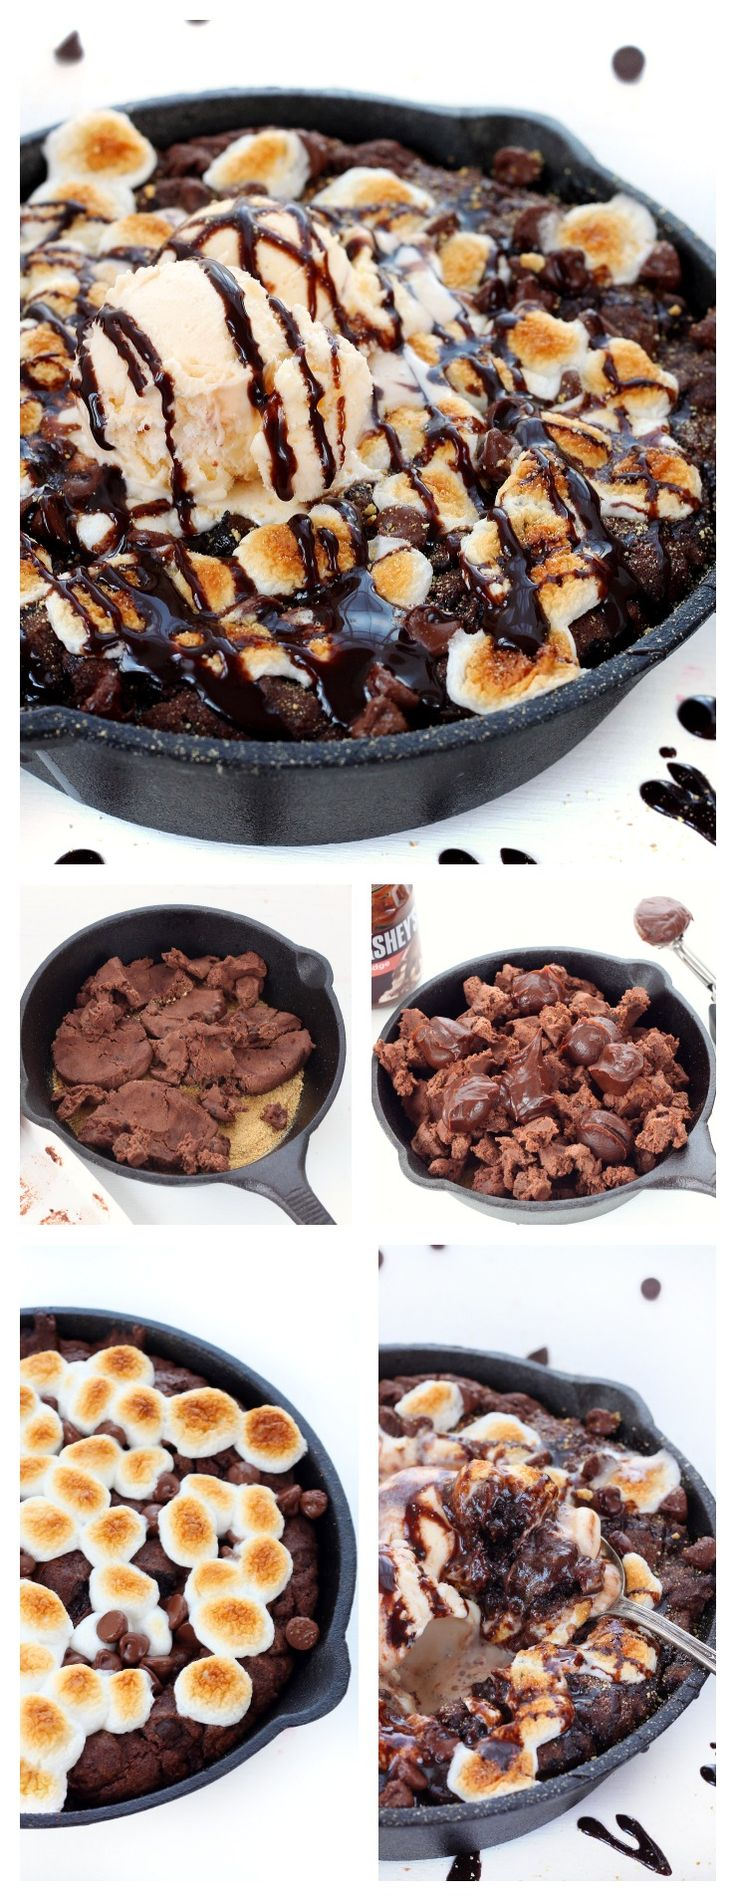 Triple chocolate smores pizookie recipe - OMG would it be wrong to make this and eat it all myself in one sitting??